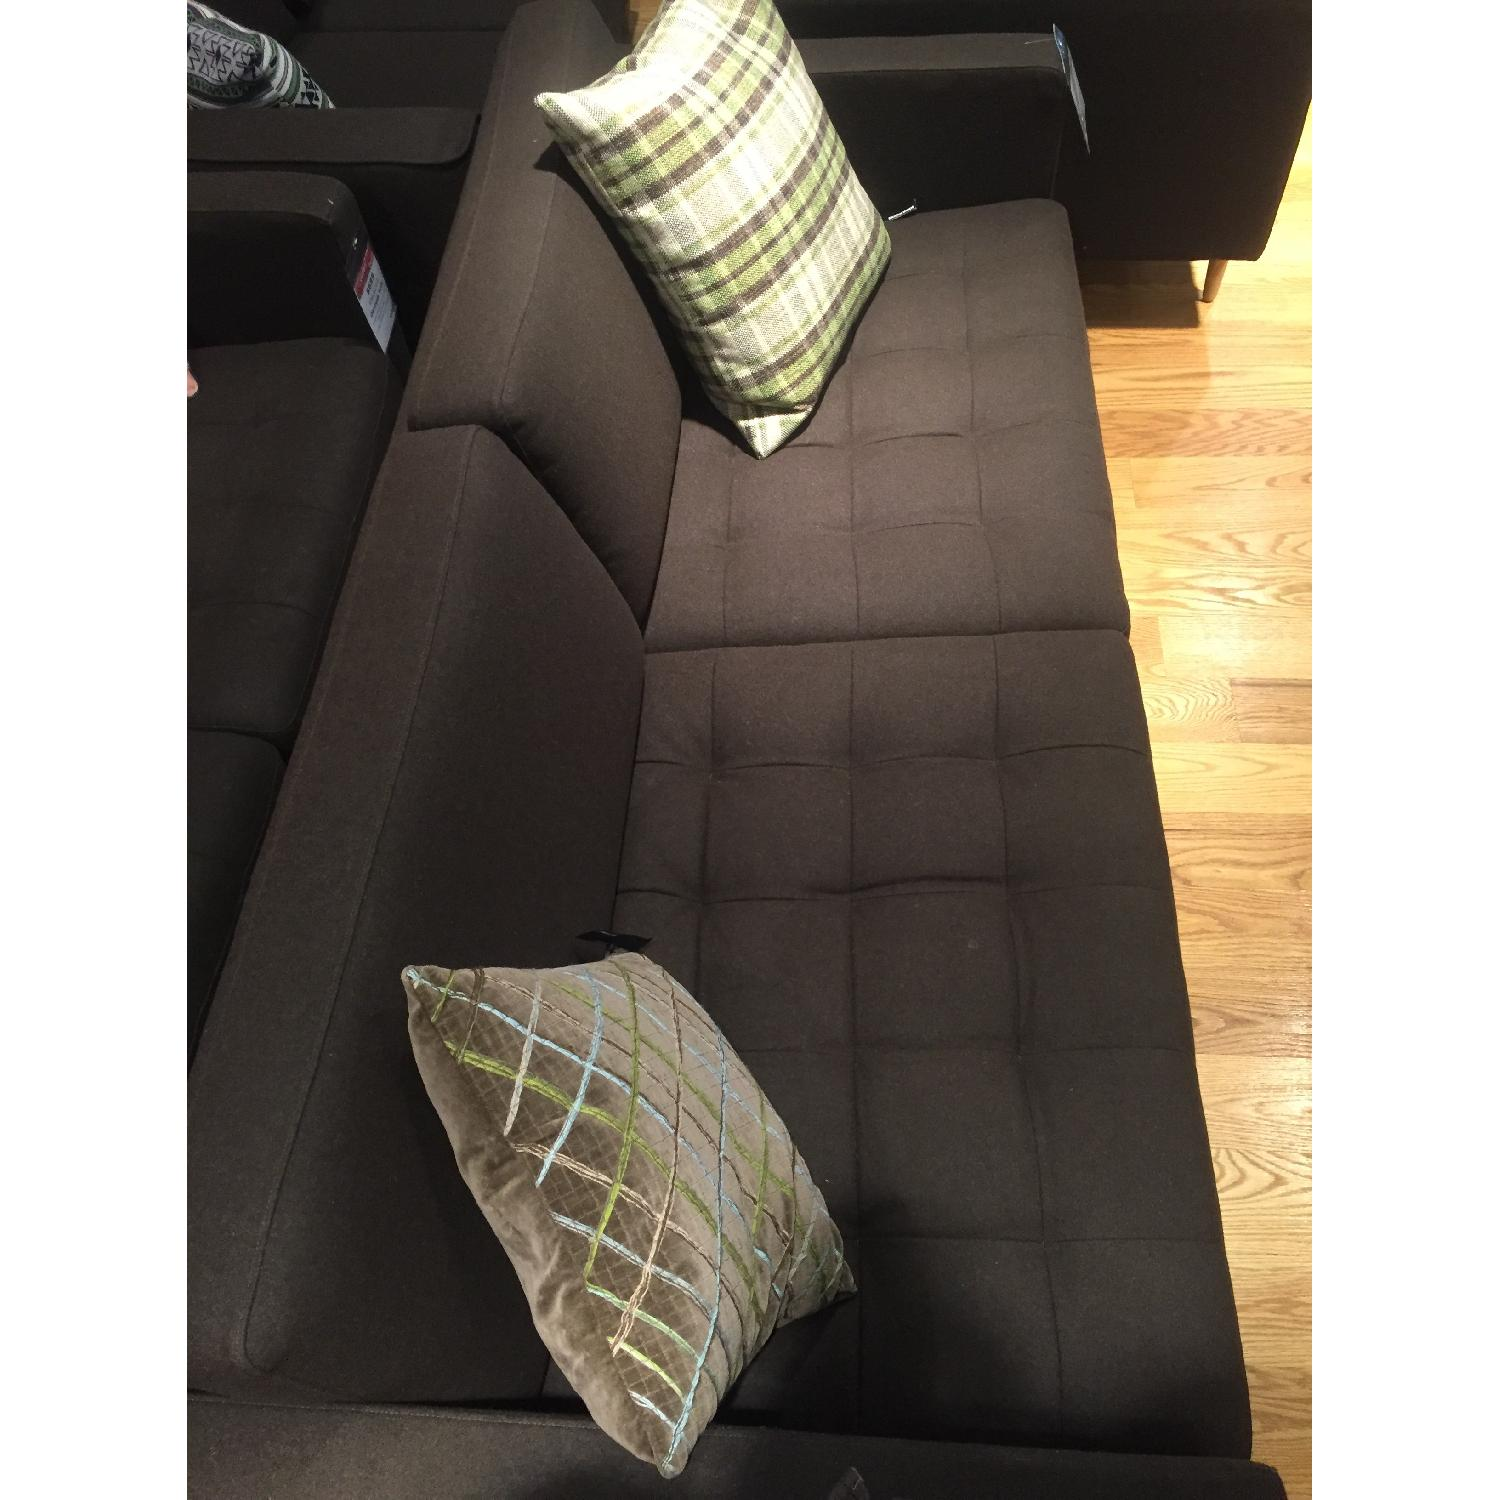 BoConcept Olympia Sofa in Chocolate Lux - image-6